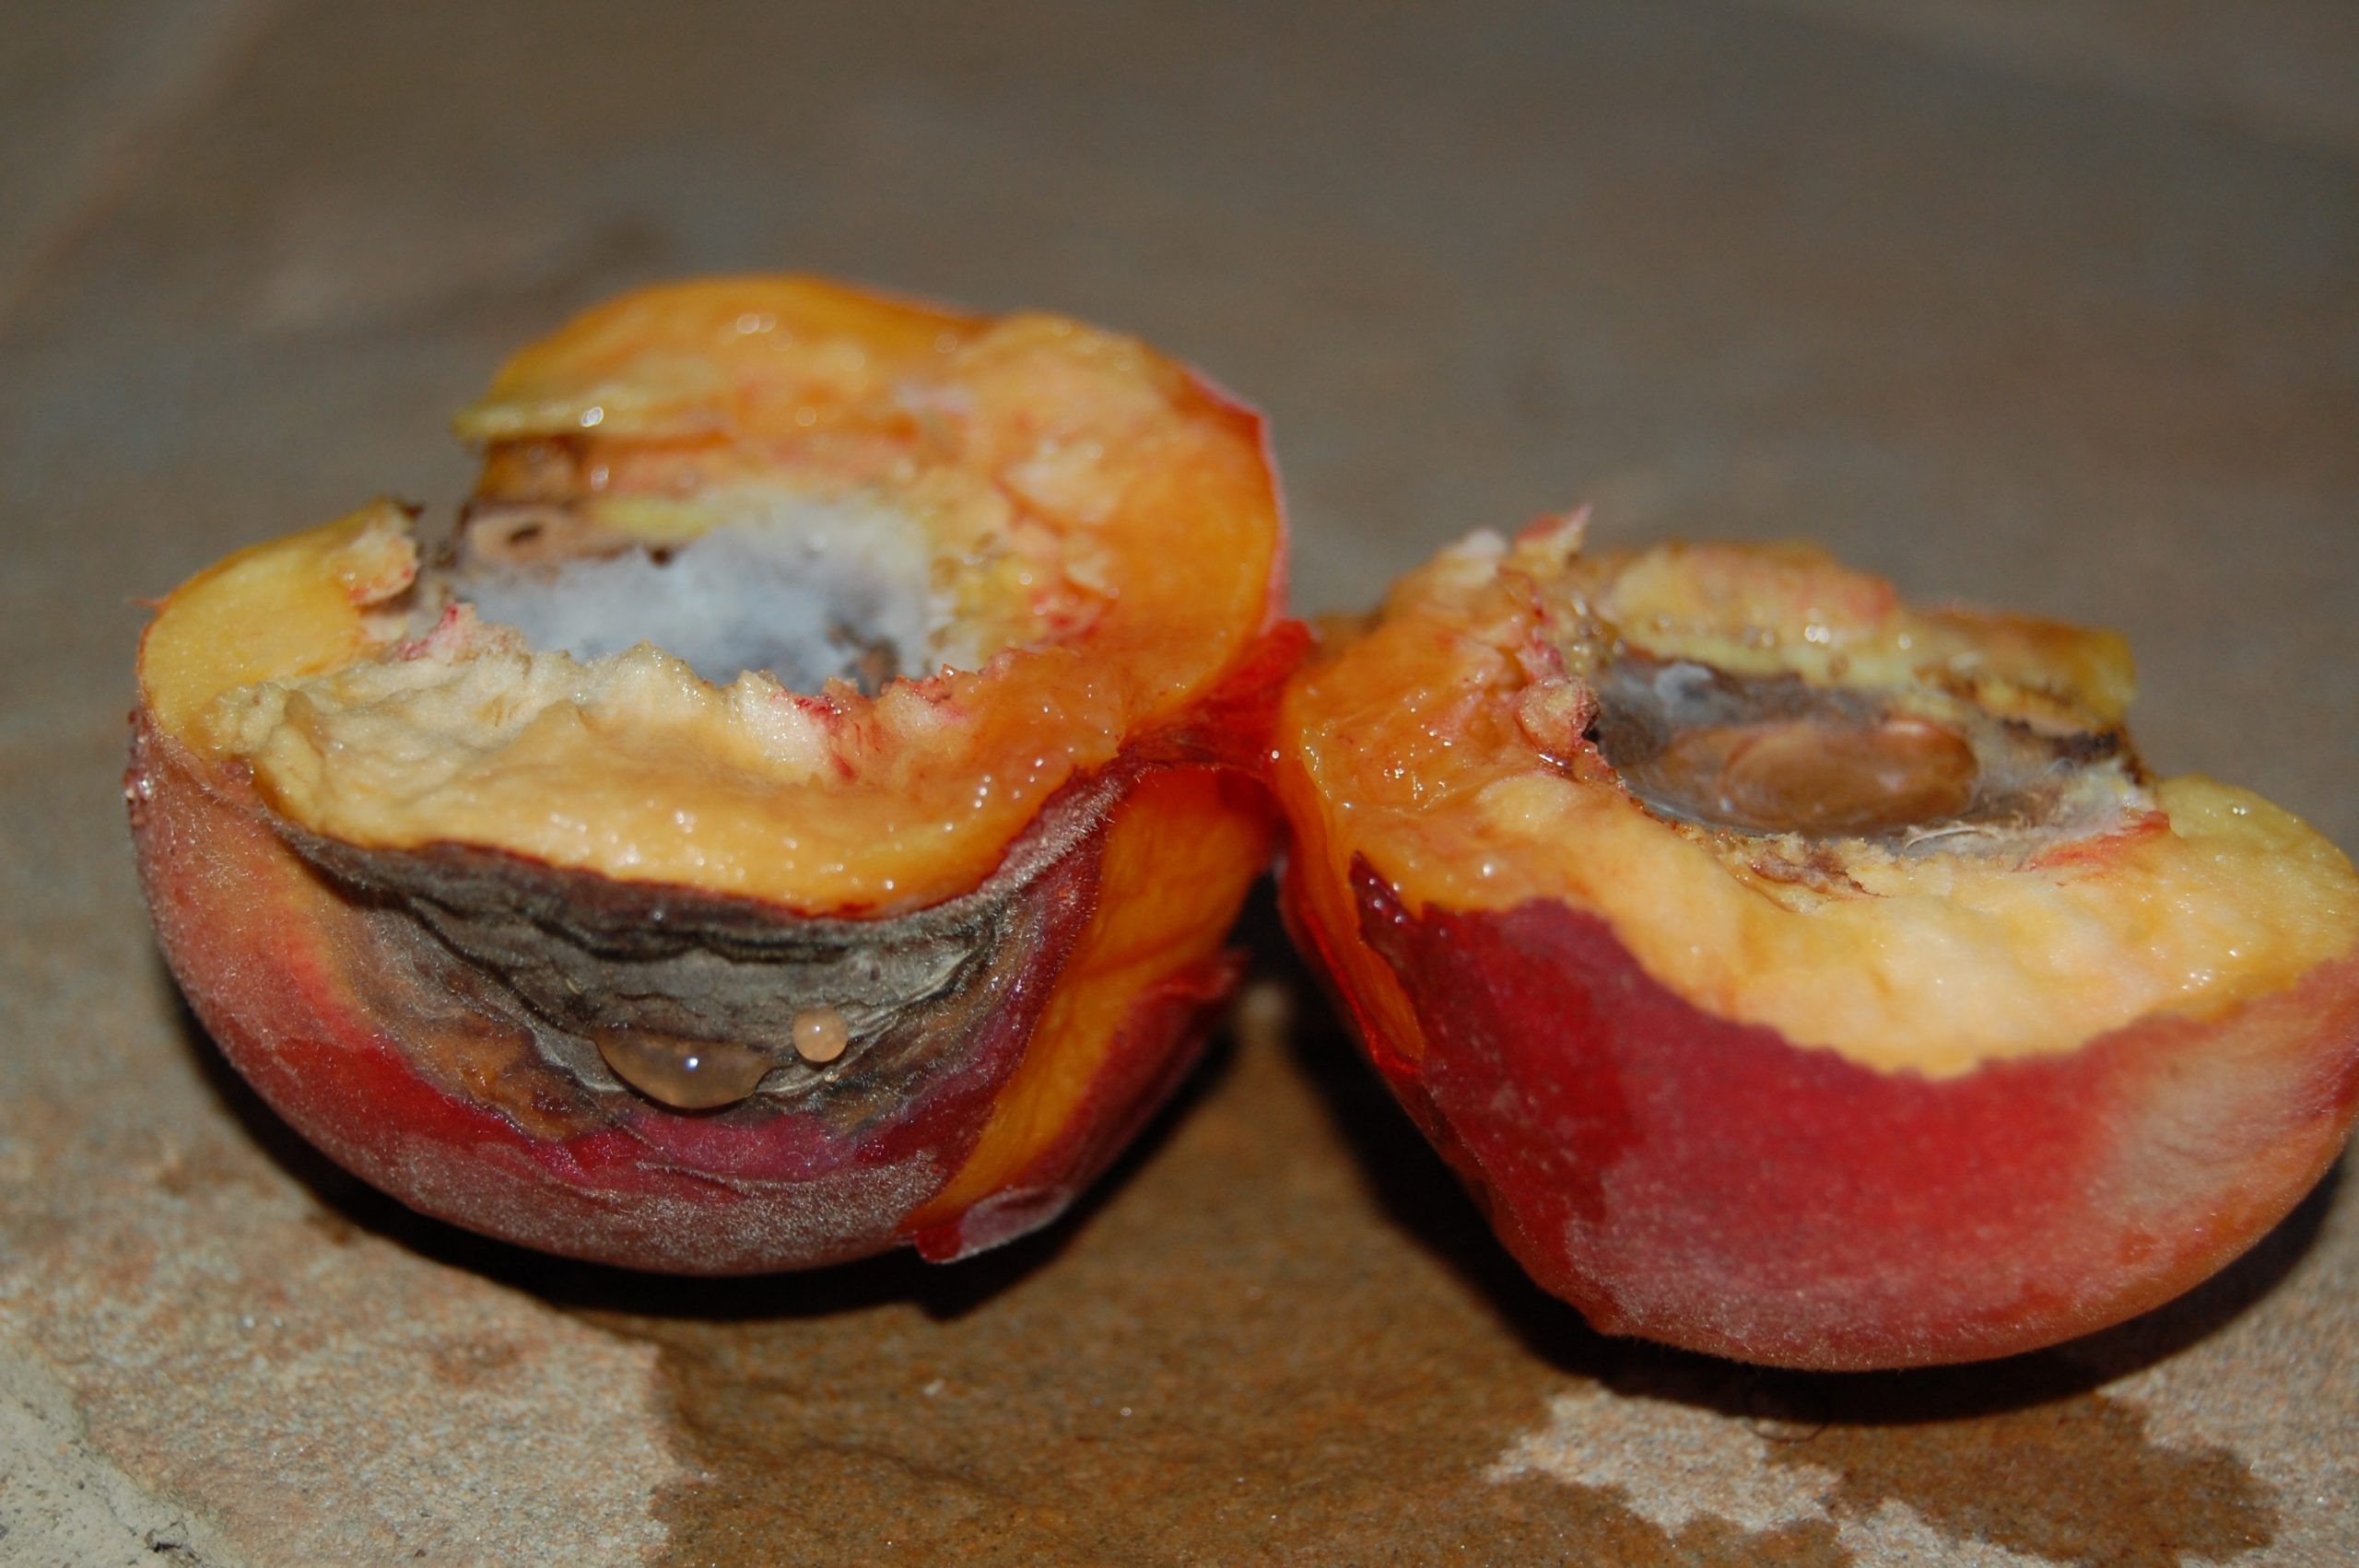 peach brown rot 3 cm_2069